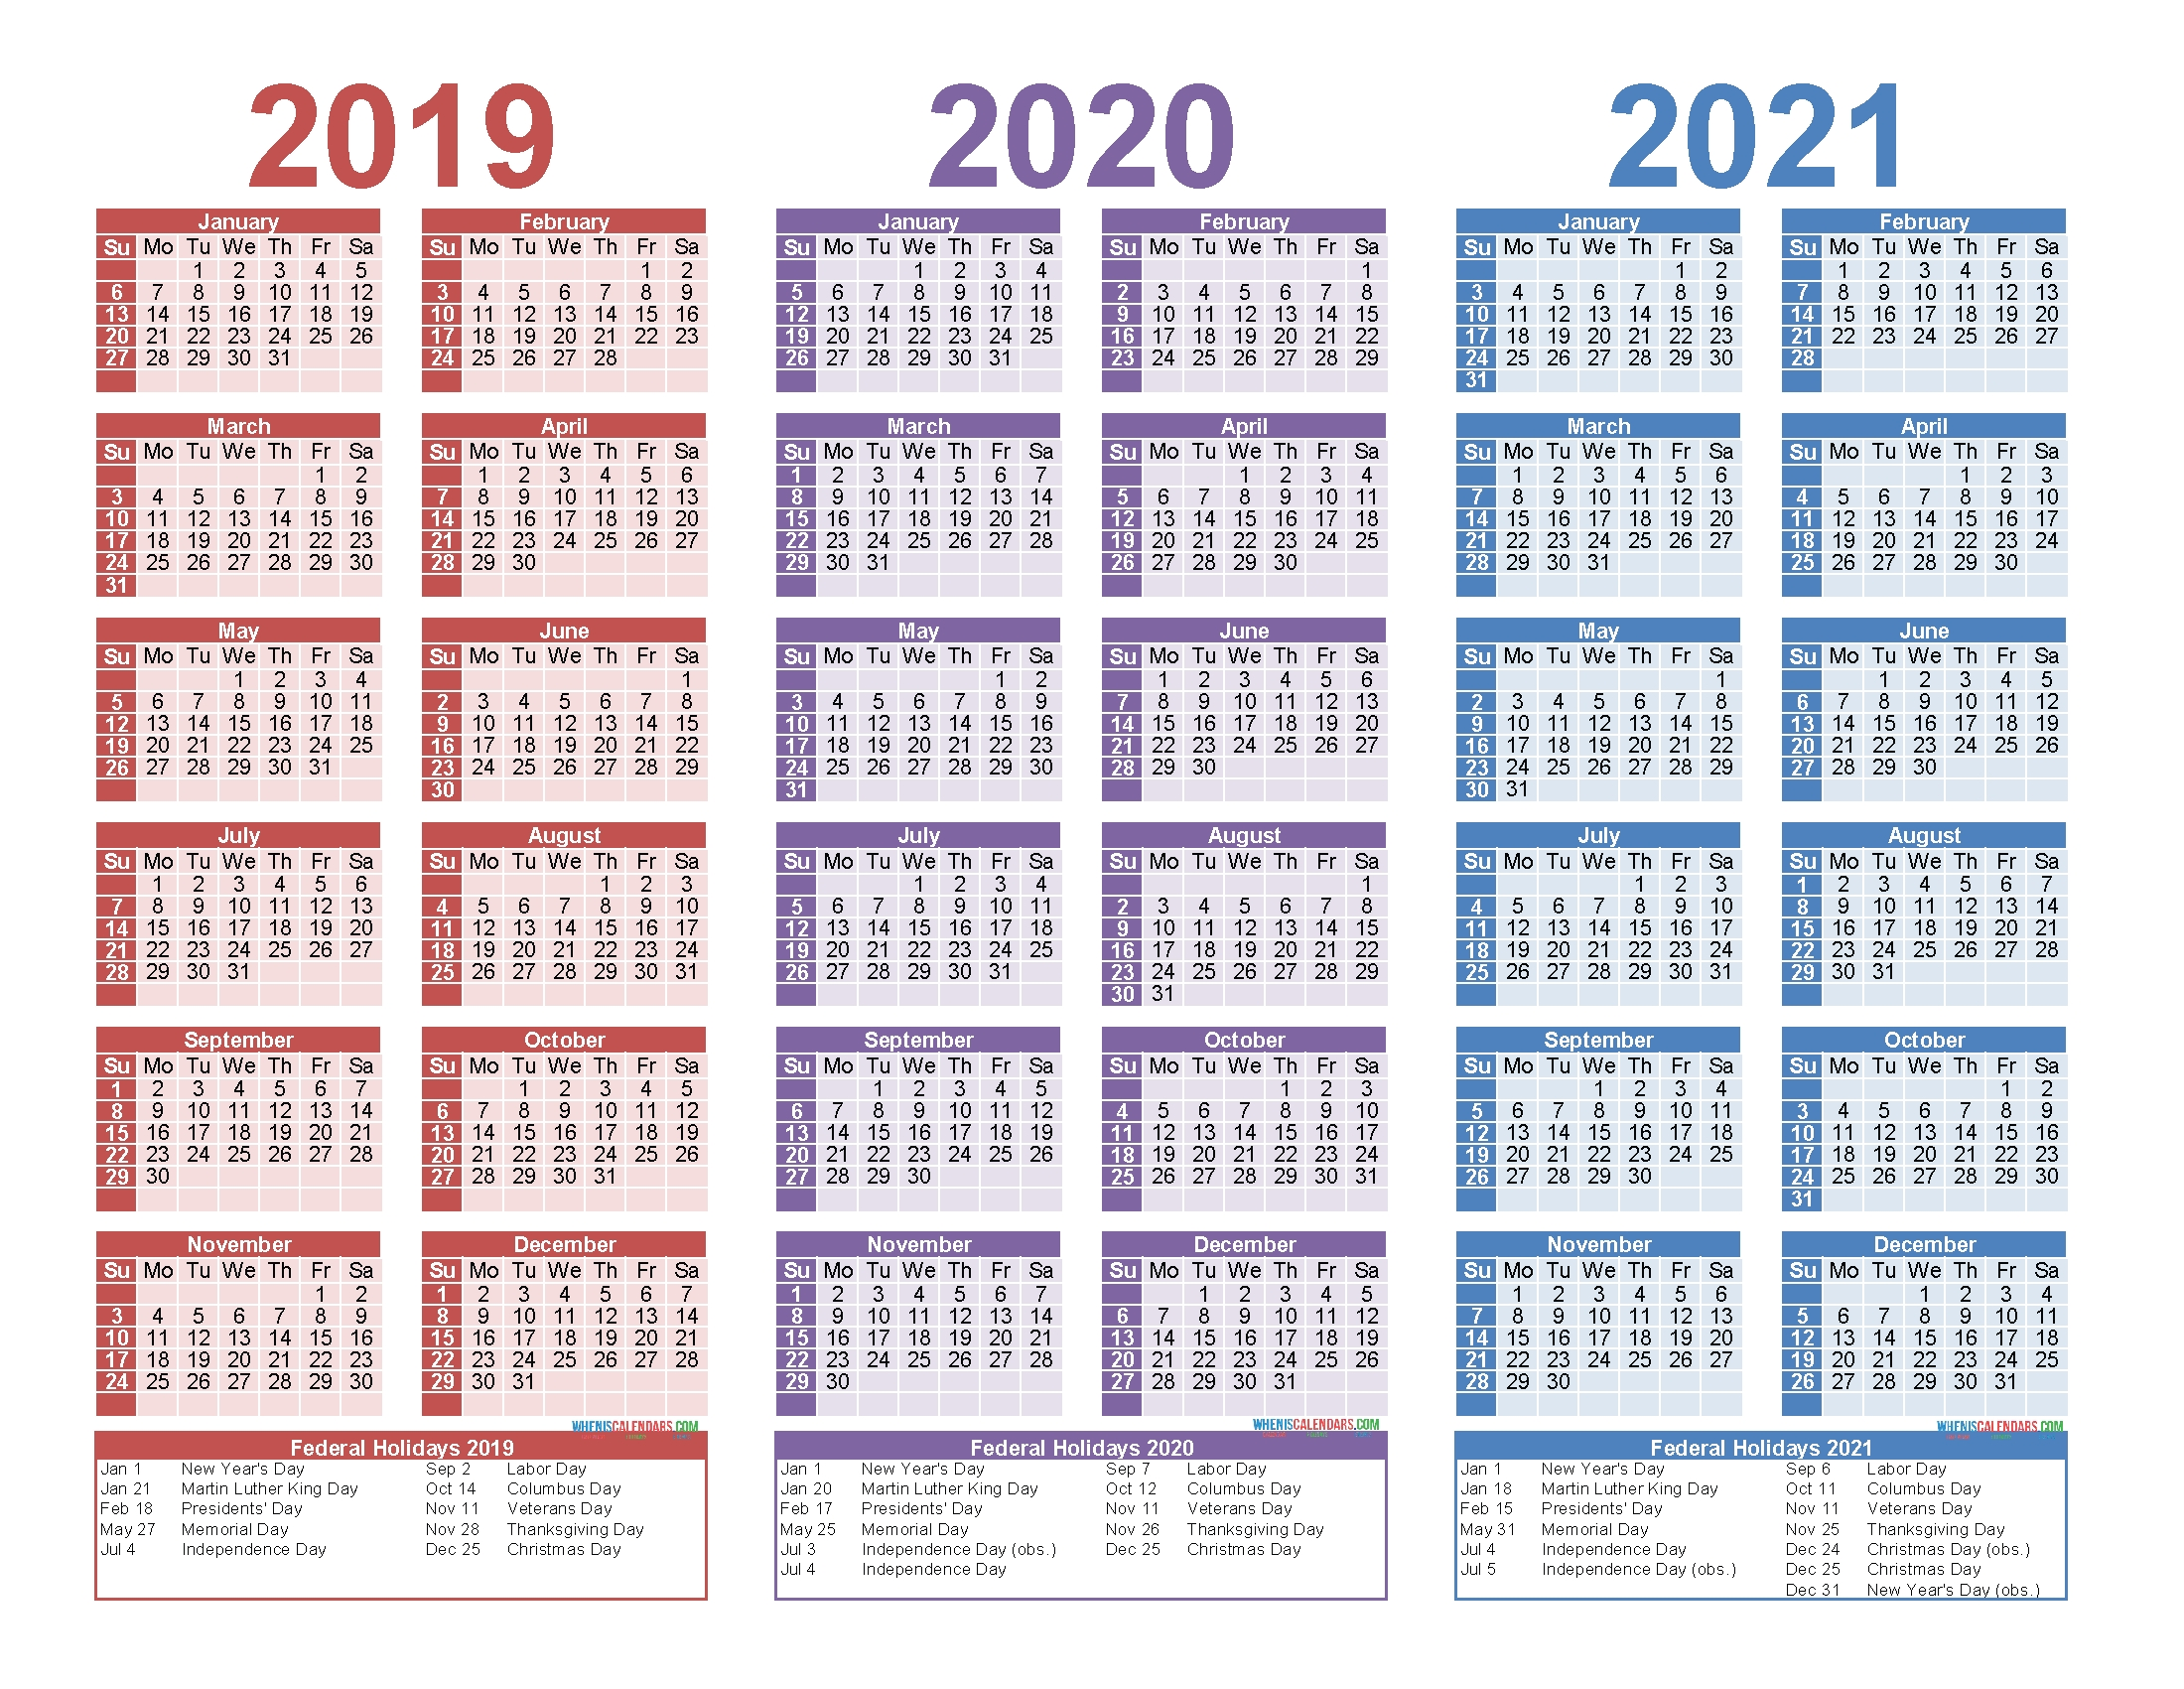 Free Printable 2019 2020 2021 Calendar With Holidays | Free within 3 Year Calendar Printable 2019 2020 2021